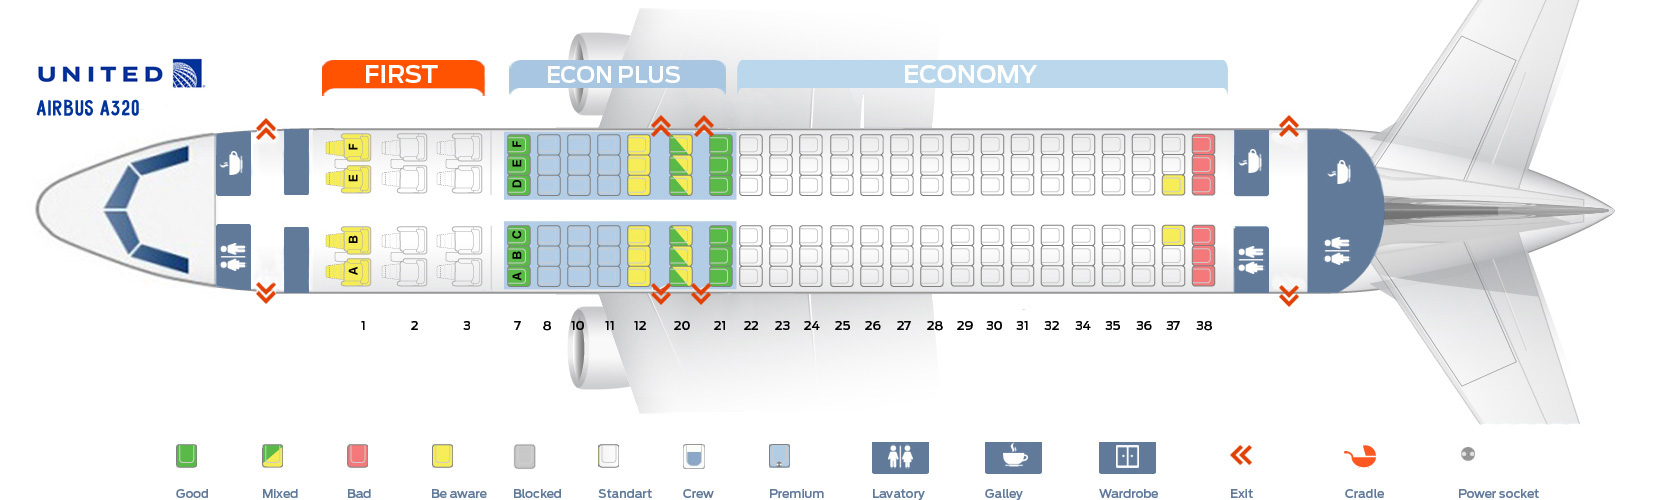 Seat map Airbus A320-200 United Airlines  Best seats in plane